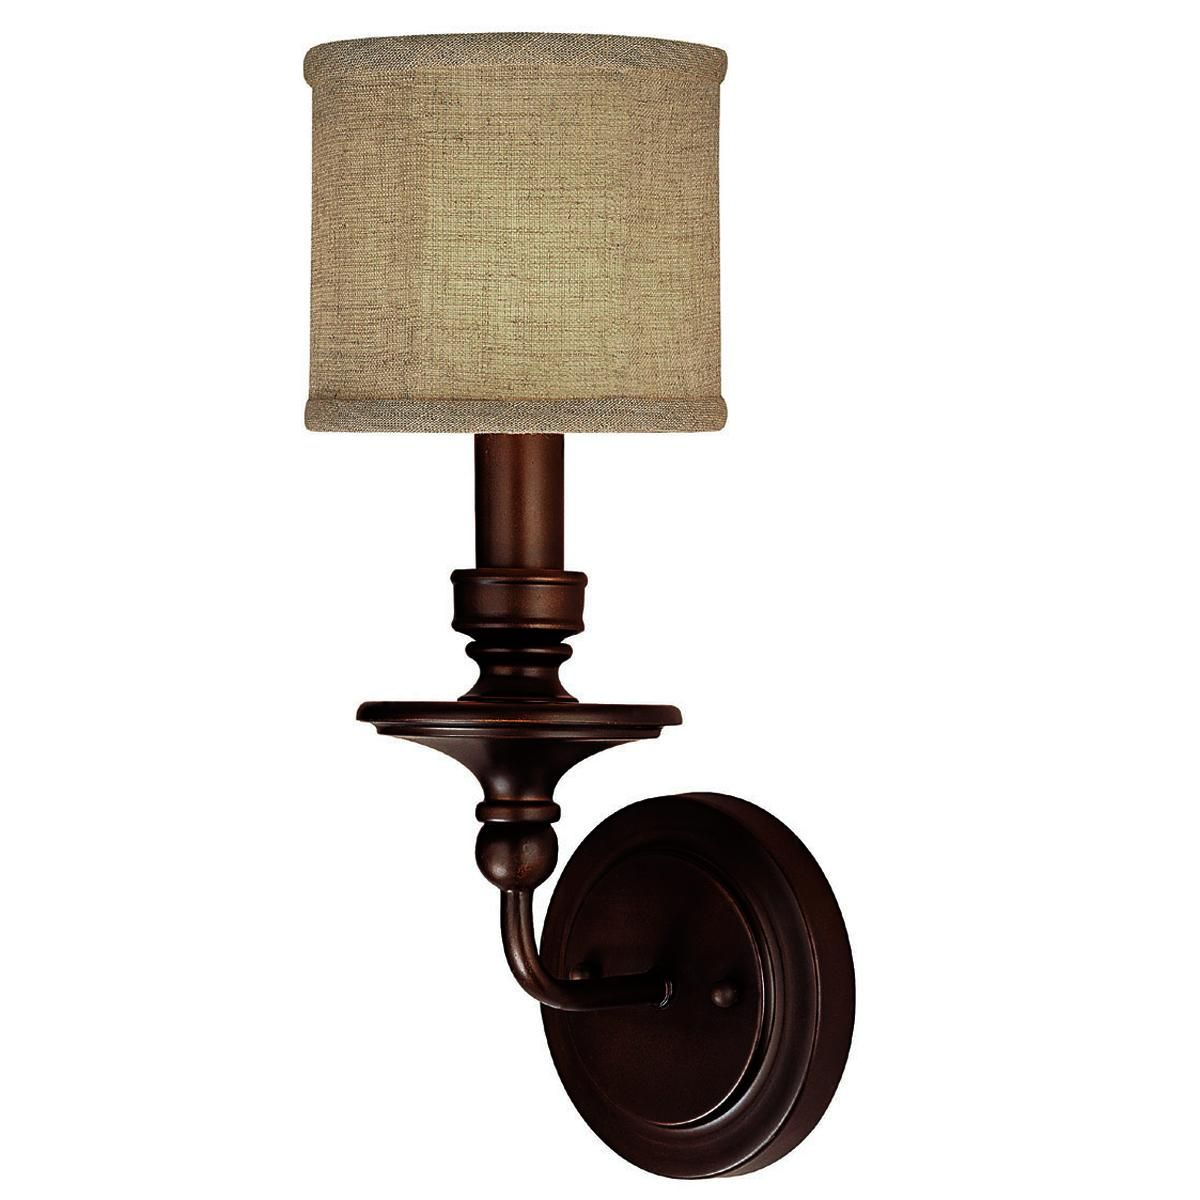 Springfield Sconce with Linen Drum Shade 1 Light | Drum ...